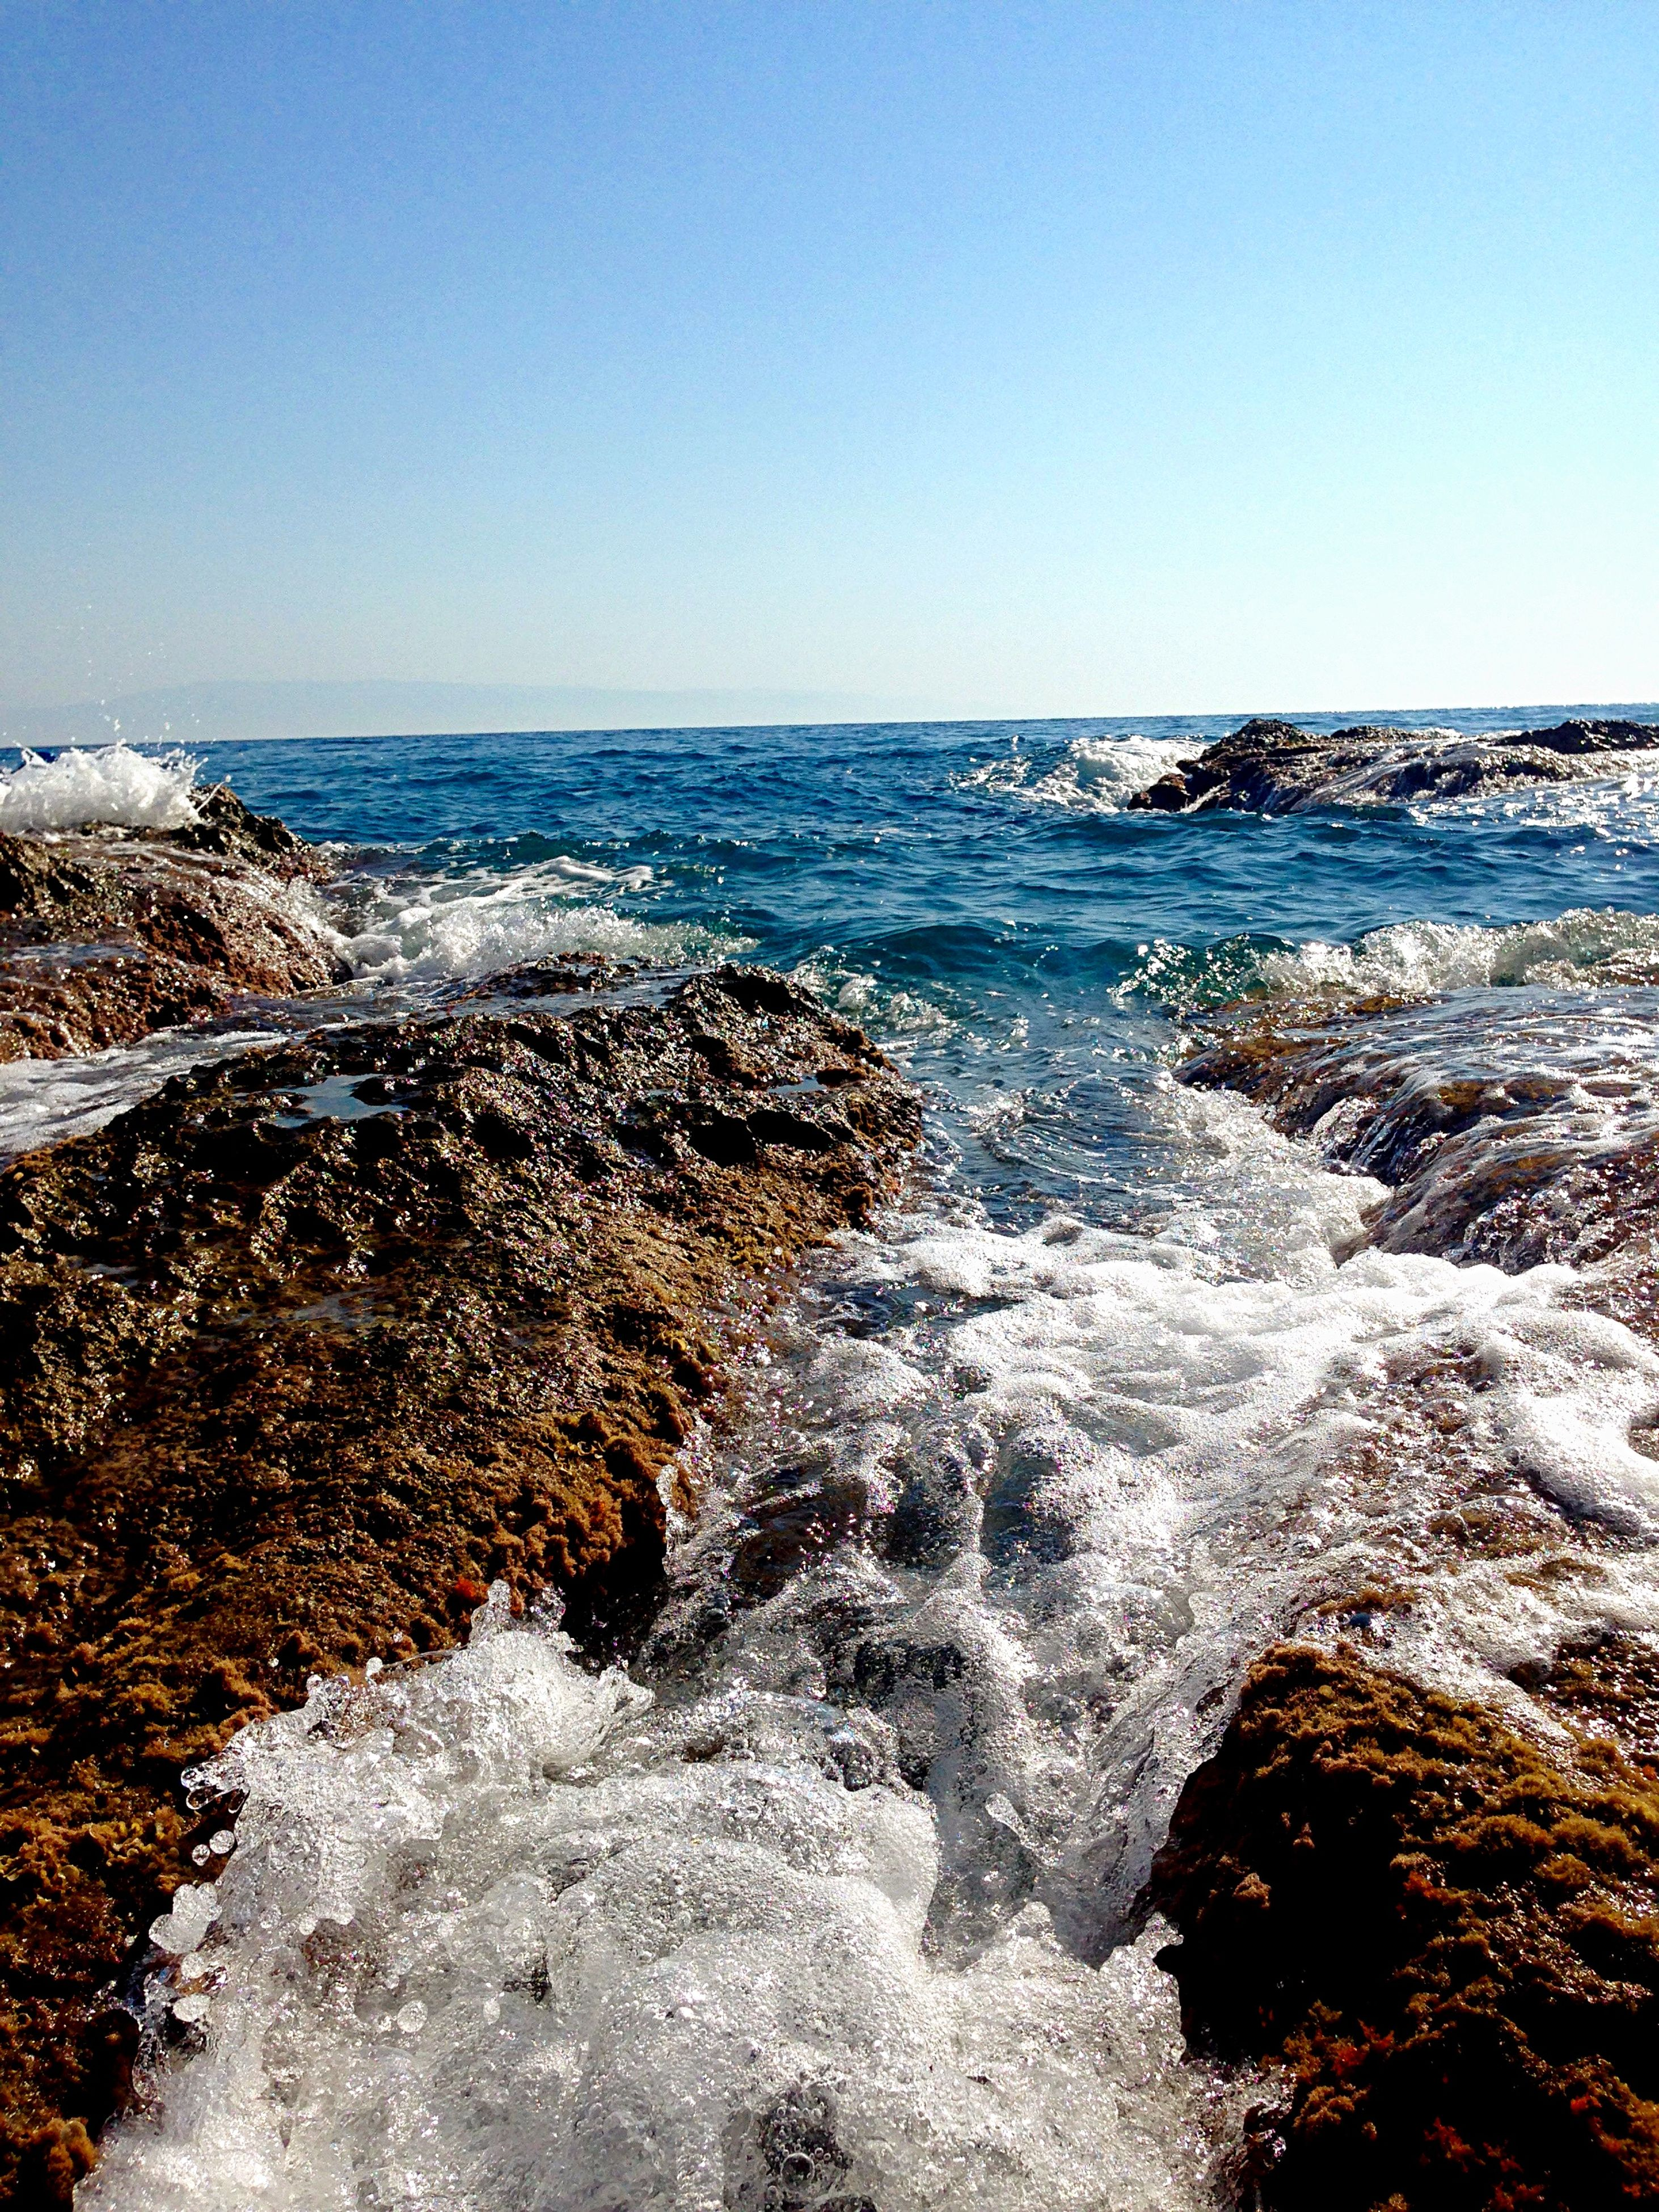 water, clear sky, sea, scenics, copy space, surf, beauty in nature, horizon over water, wave, beach, tranquil scene, nature, shore, blue, tranquility, motion, rock - object, idyllic, sky, day